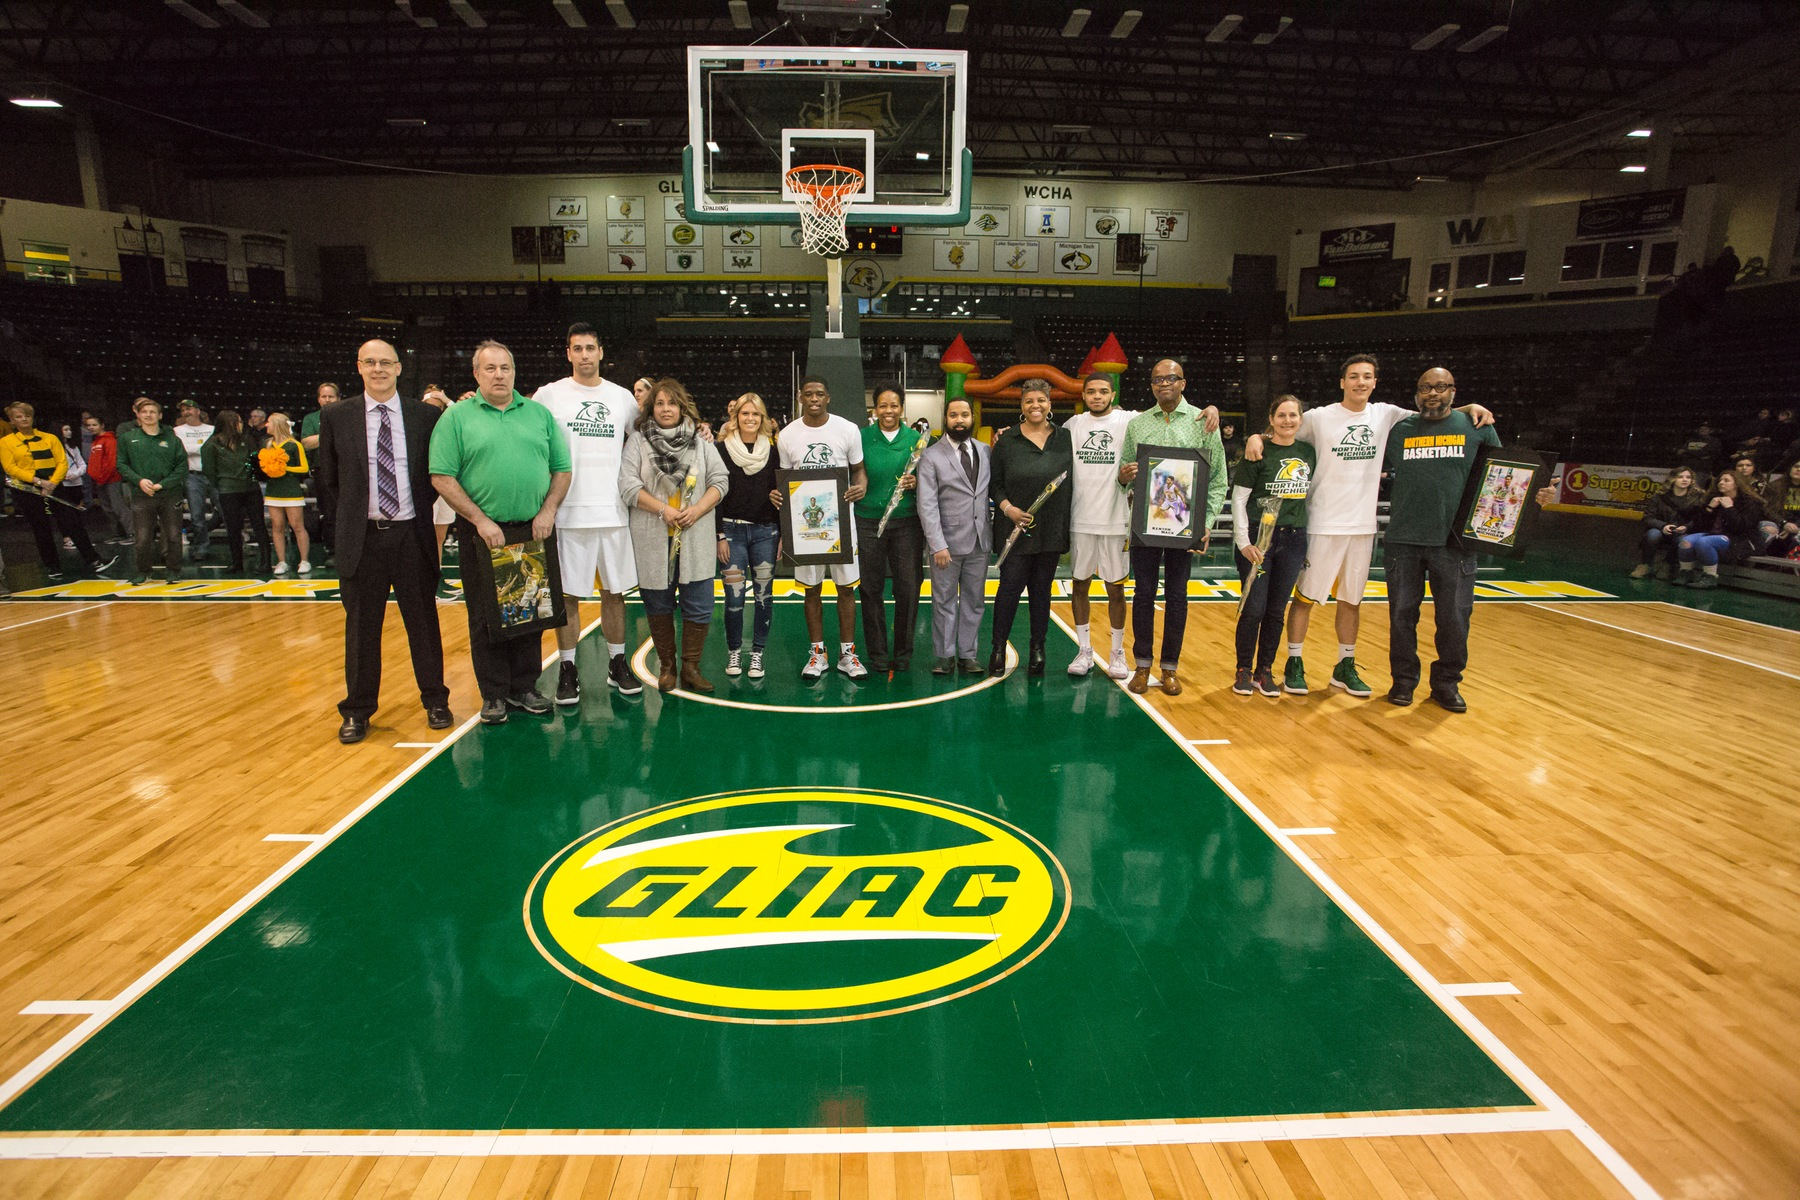 NMU Celebrates Senior Day with Victory Over Northwood